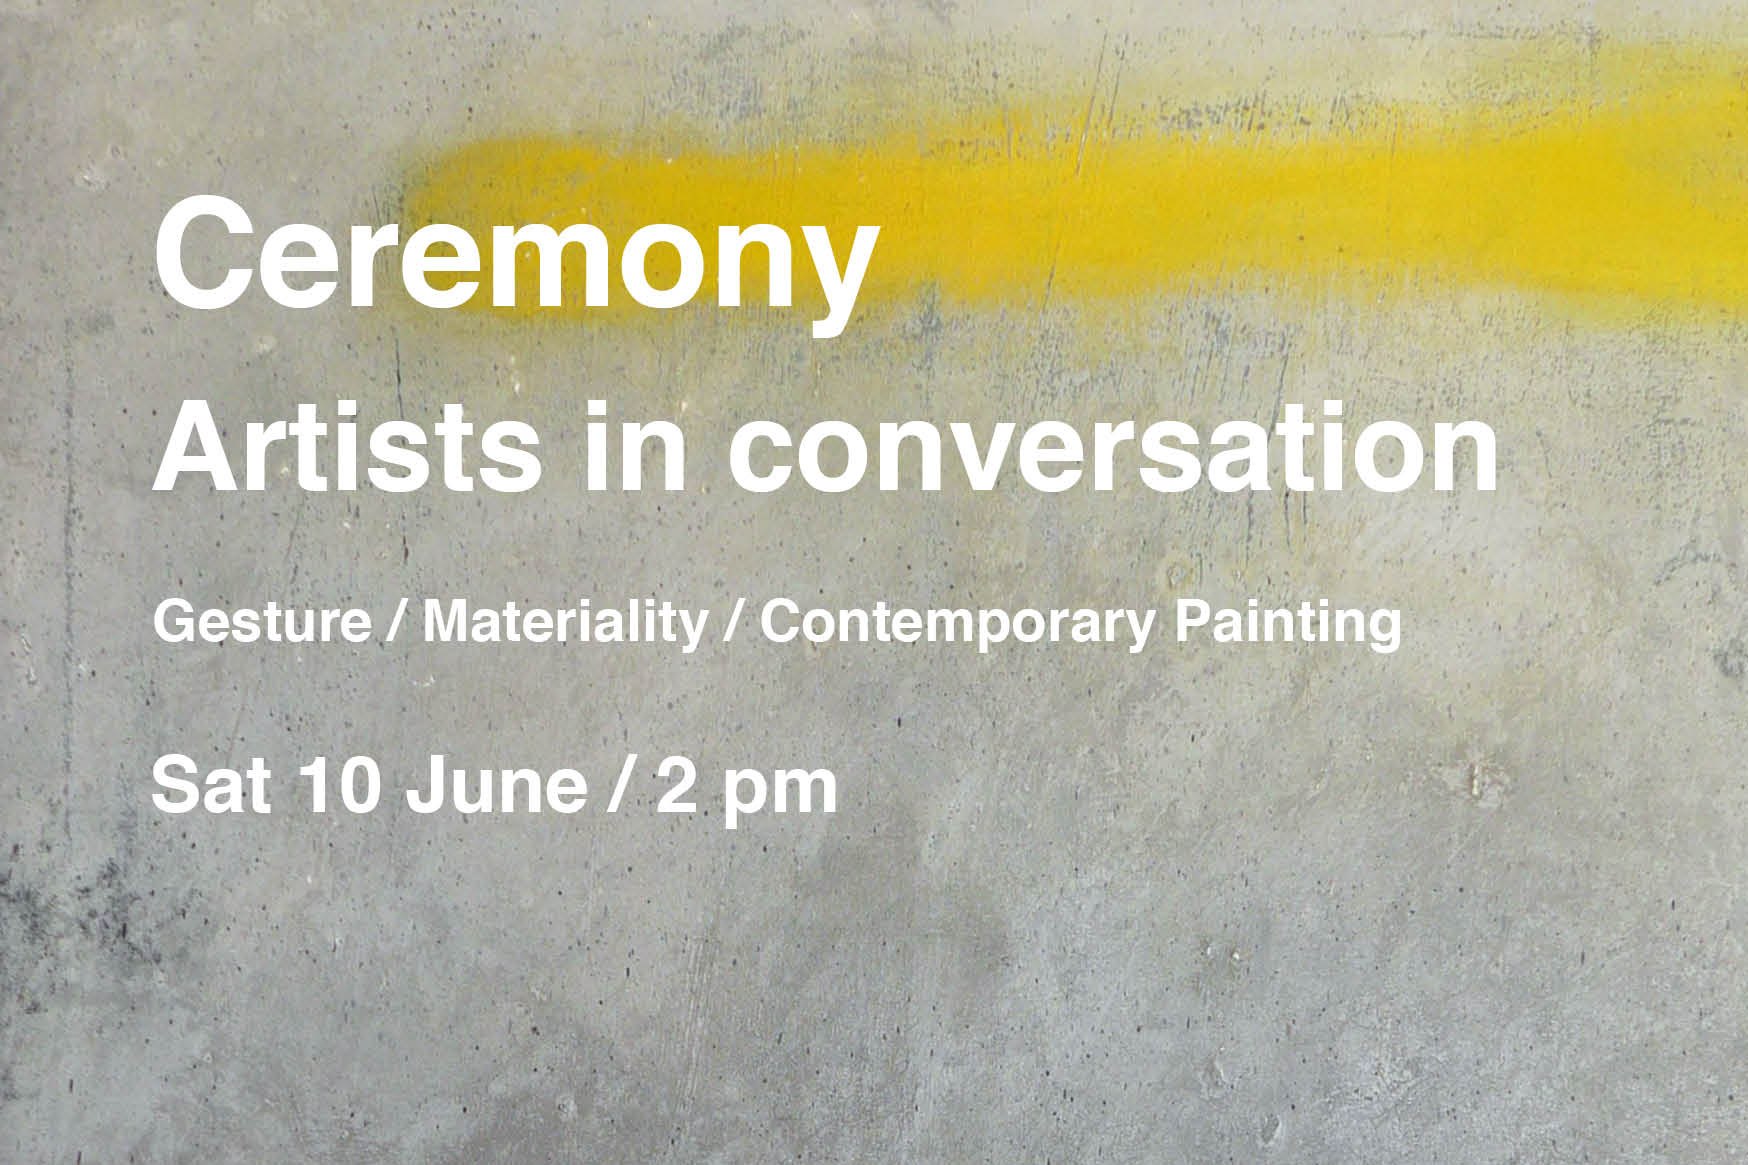 Ceremony artists in conversation at No 20